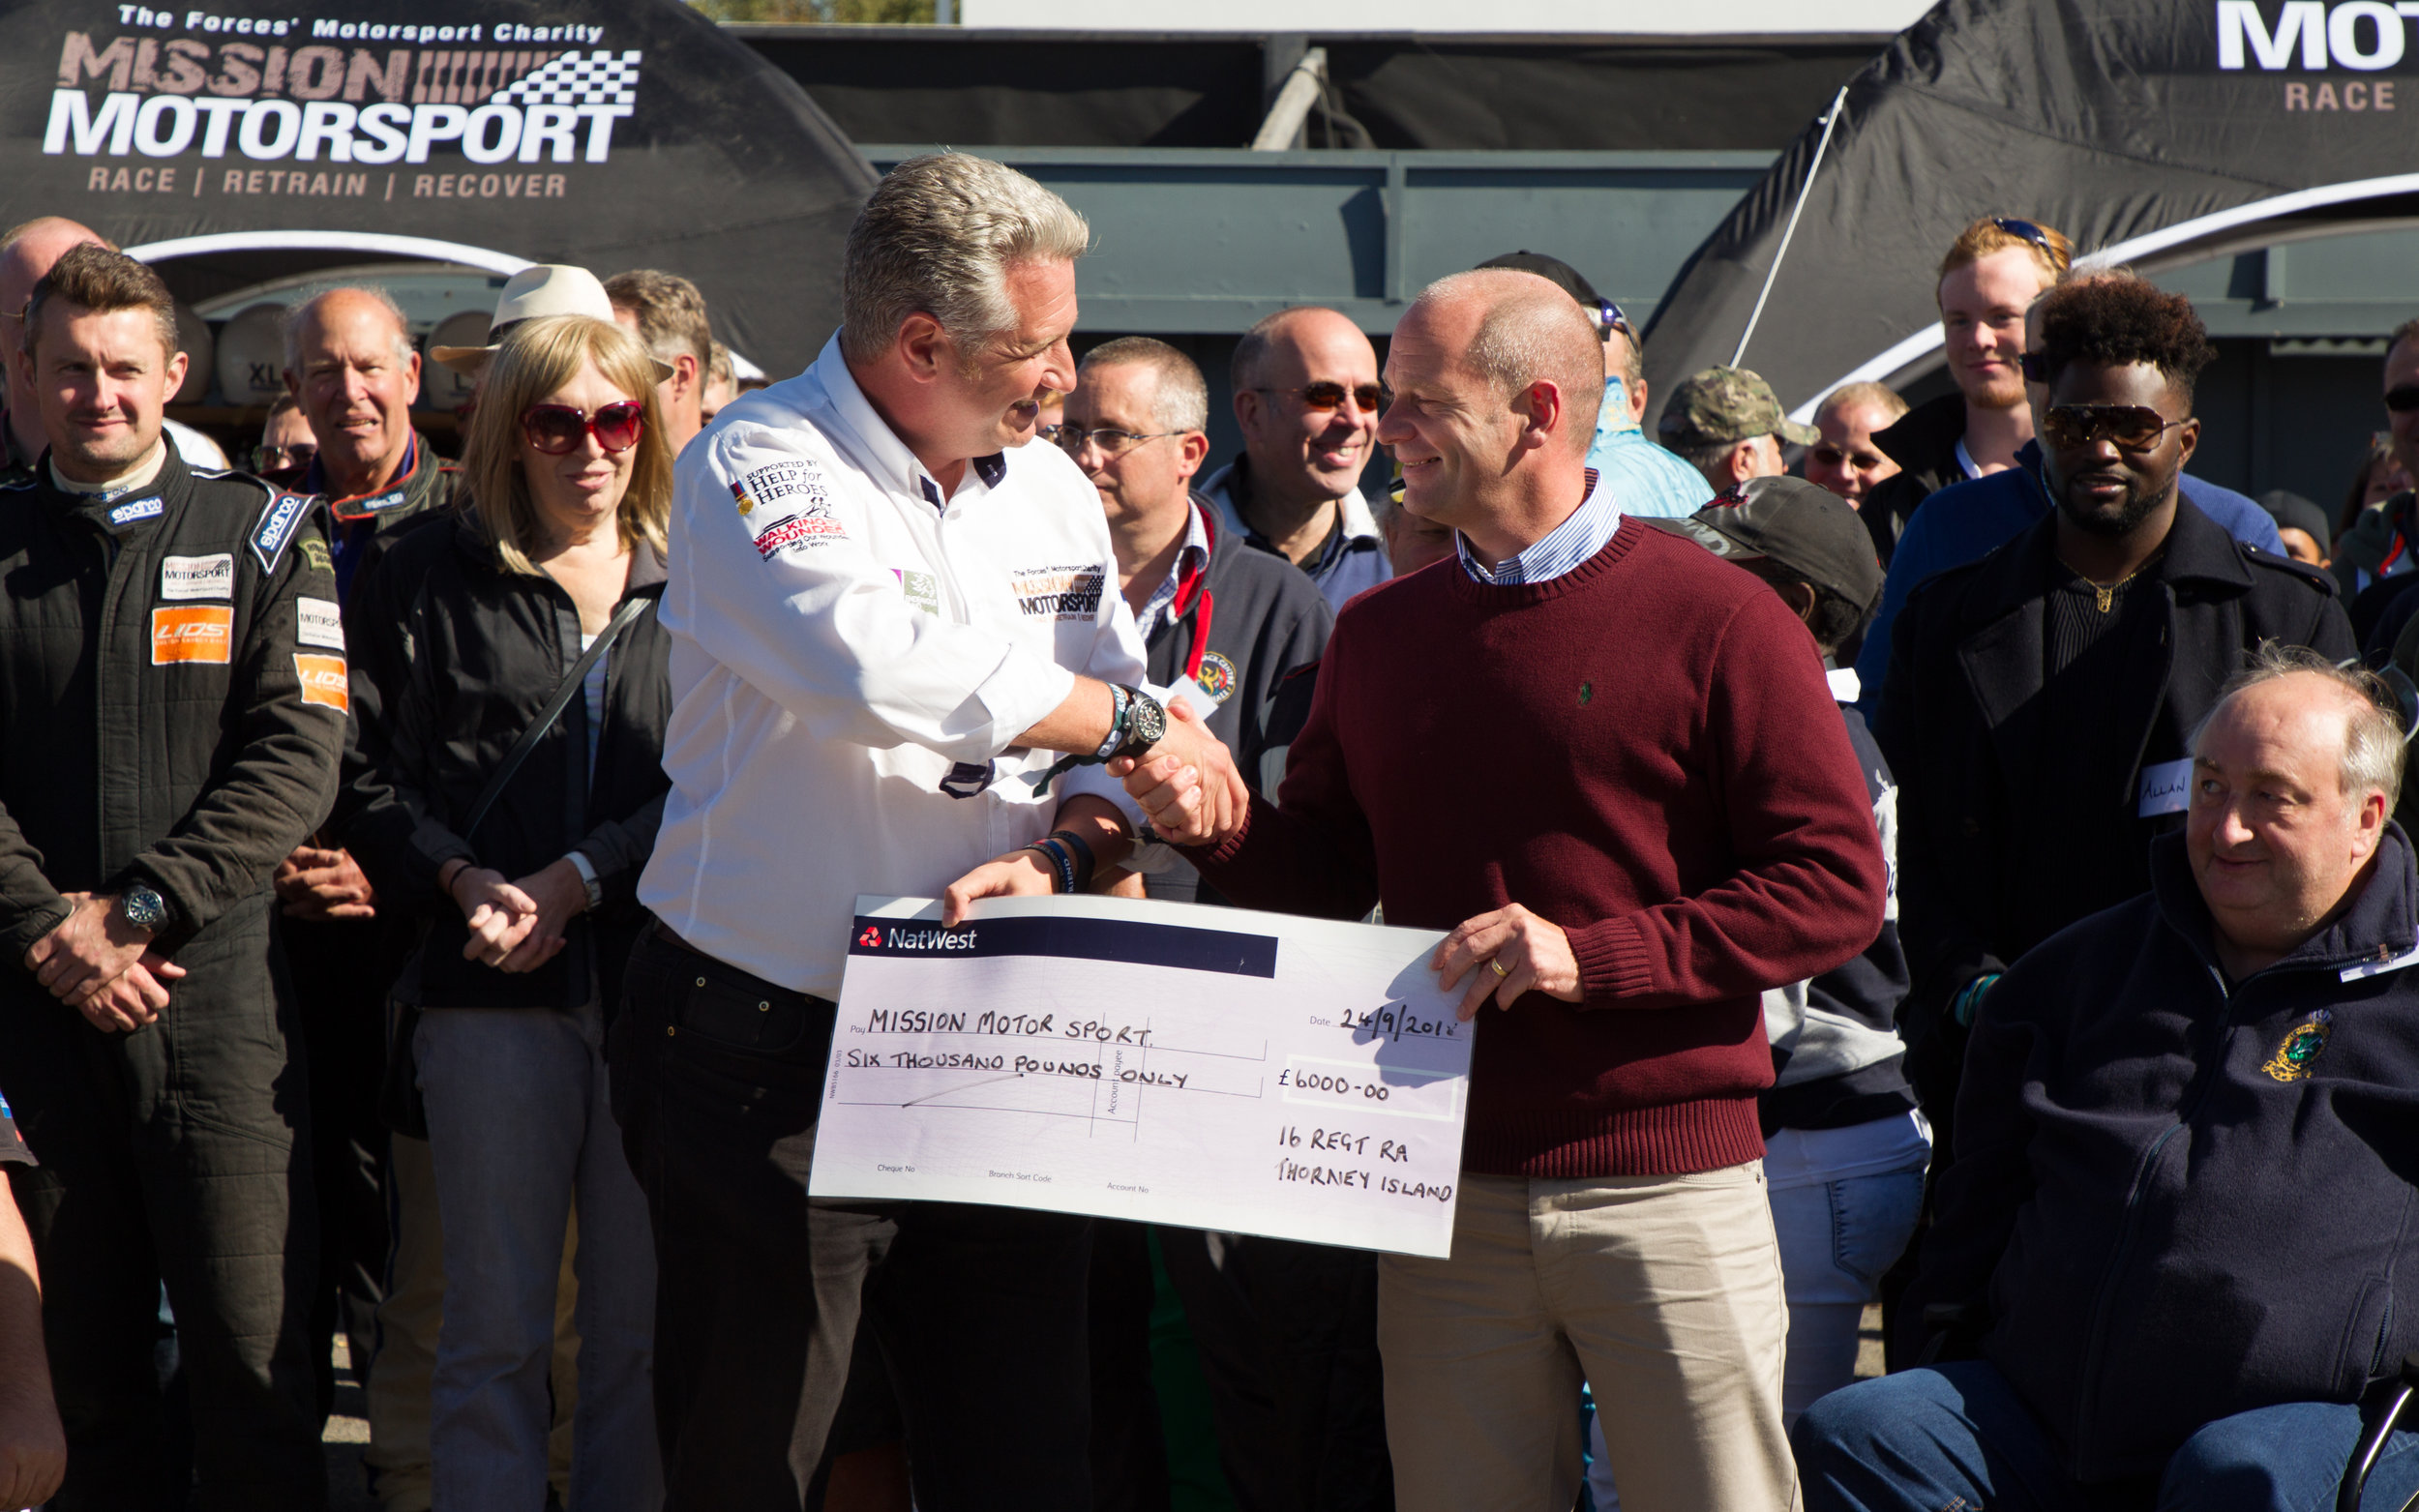 16 Regt Royal Artillery donating a cheque after a boxing night to raise money for Mission Motorsport